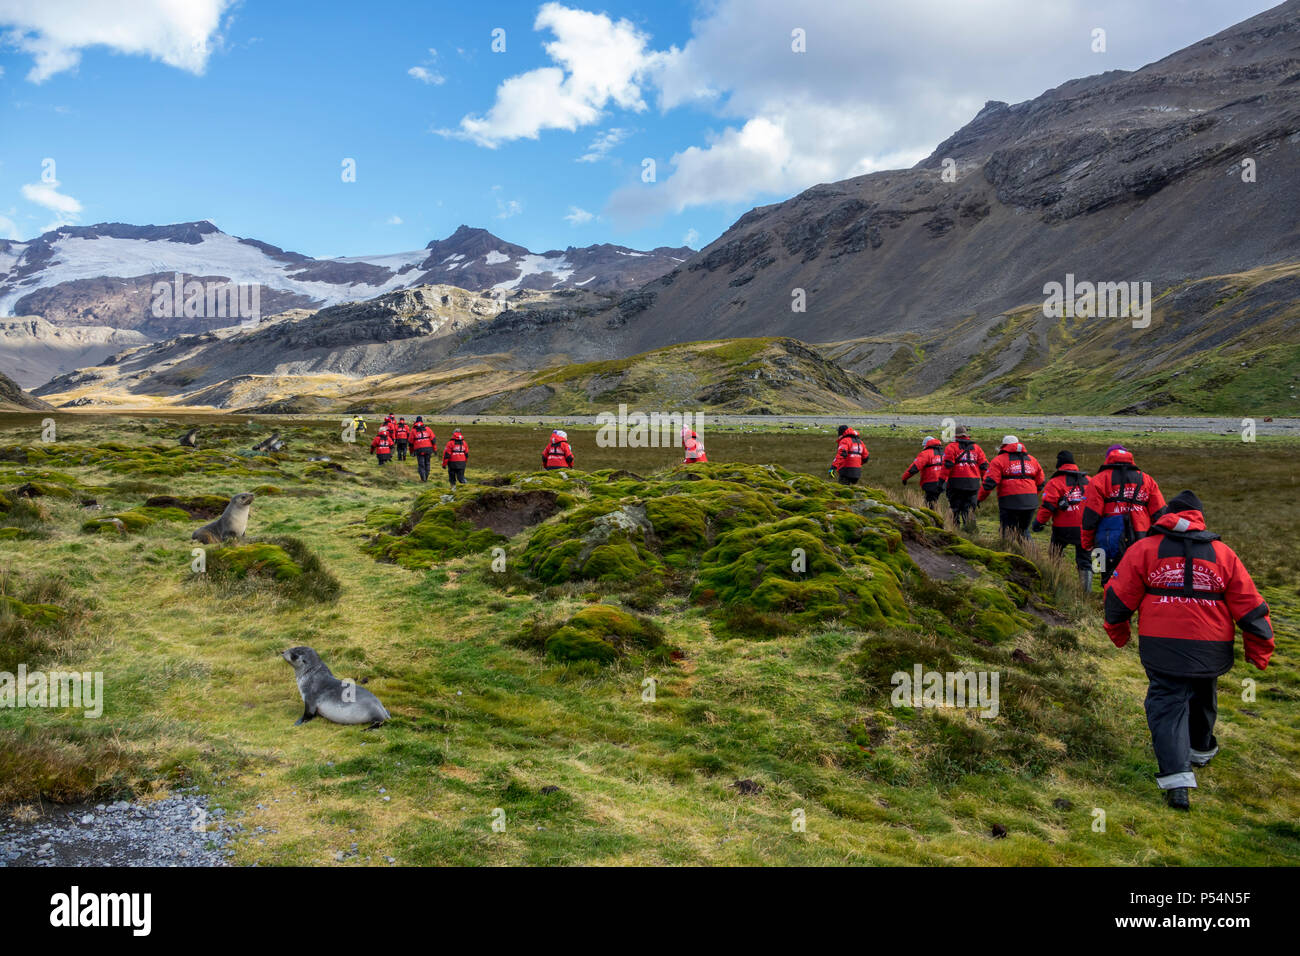 Expedition ship passengers hiking in Shackleton Valley, South Georgia Island - Stock Image